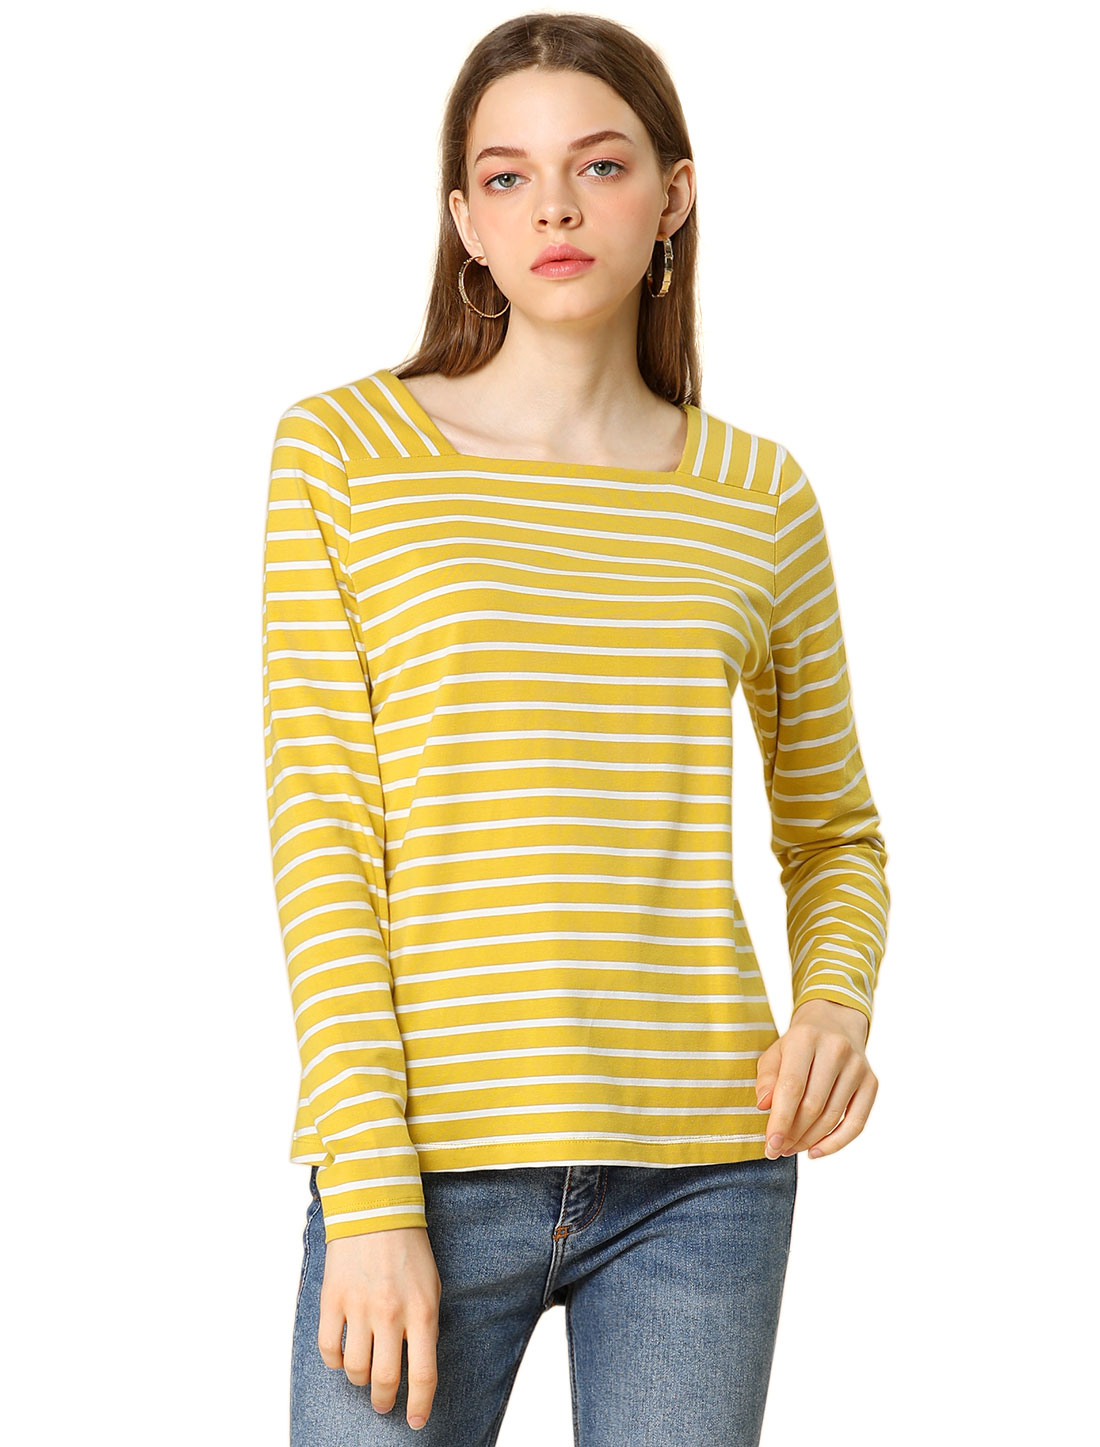 Allegra K Women's Long Sleeve Square Neck Striped T-Shirt Yellow L